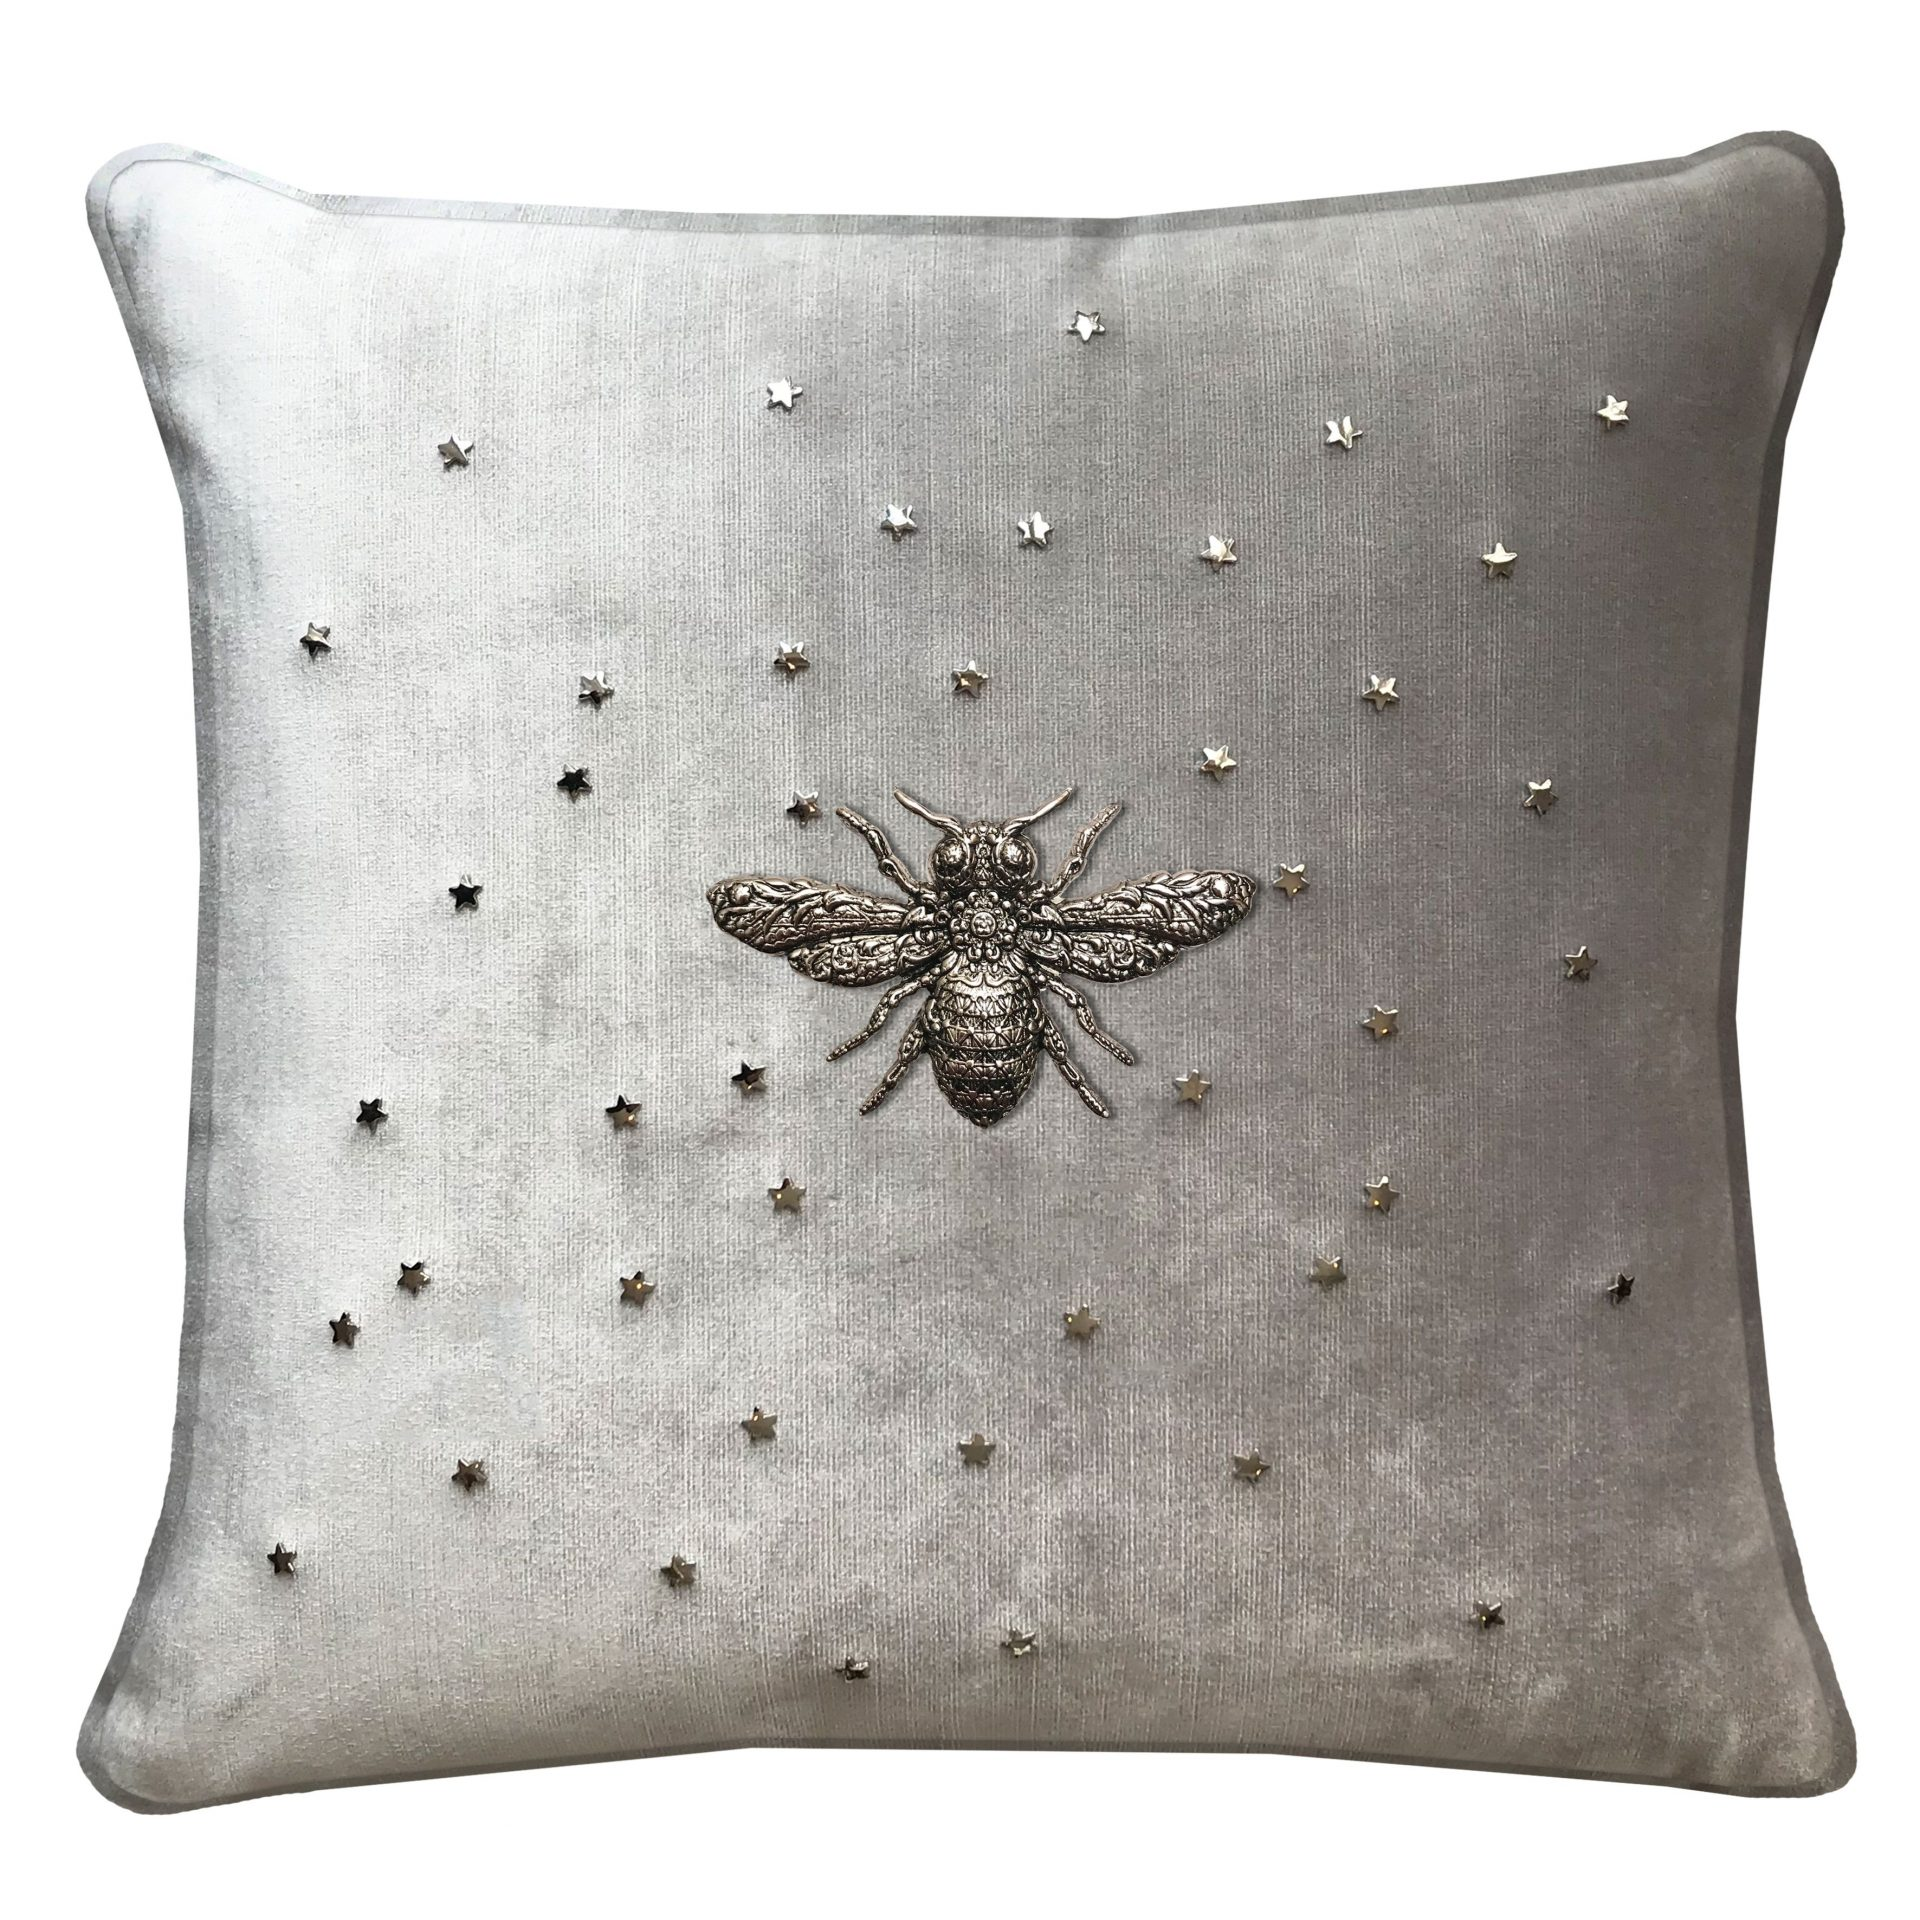 Throw Pillow with Bee and Stars.